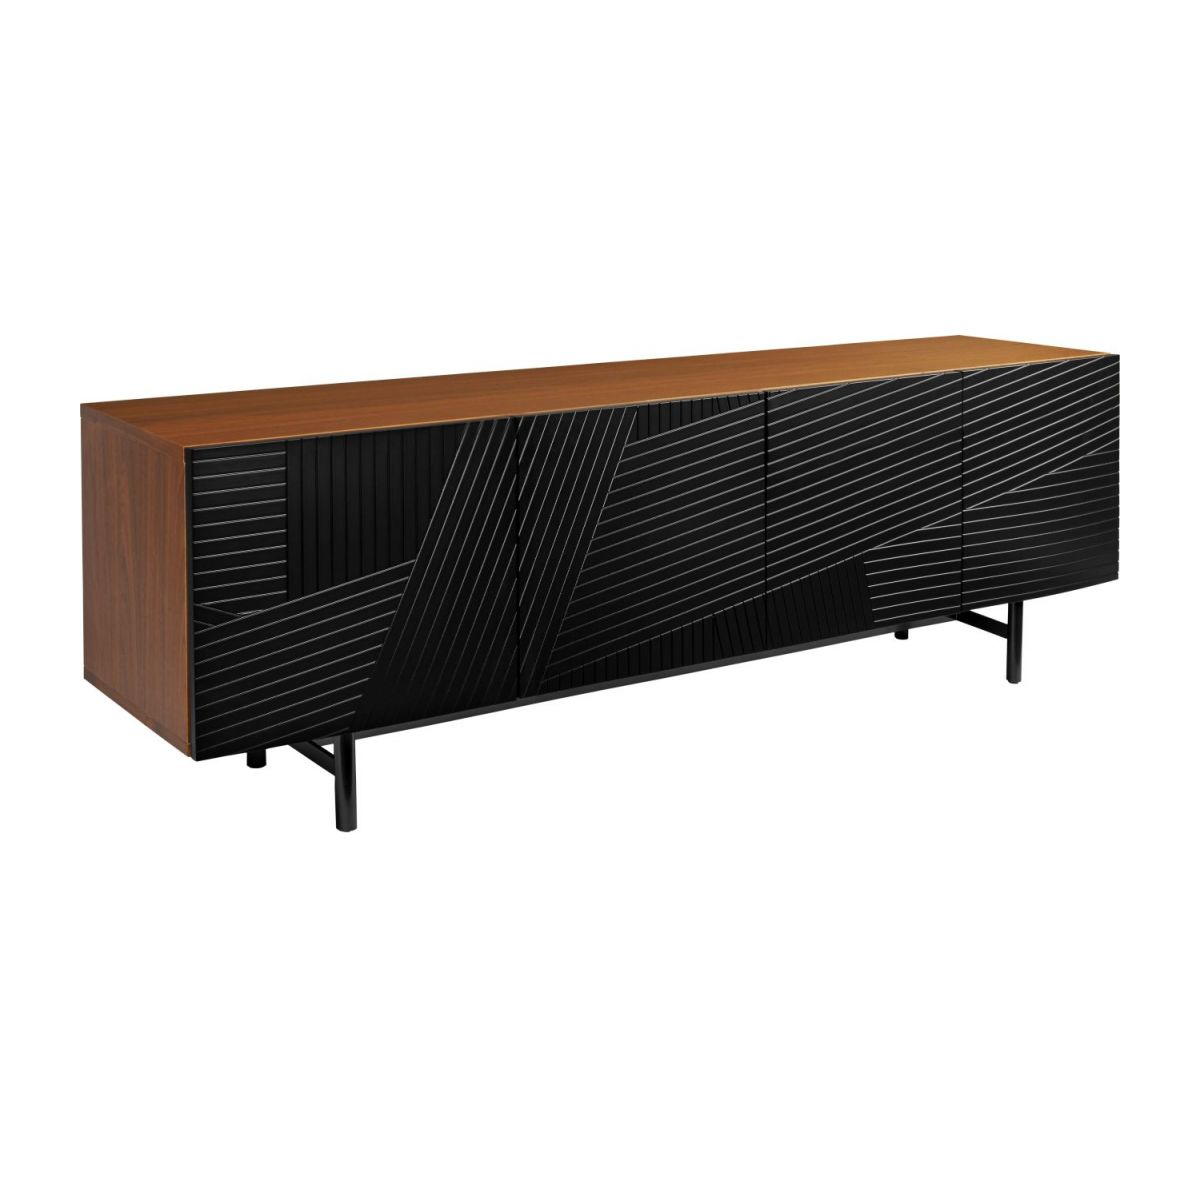 Low walnut sideboard n°1